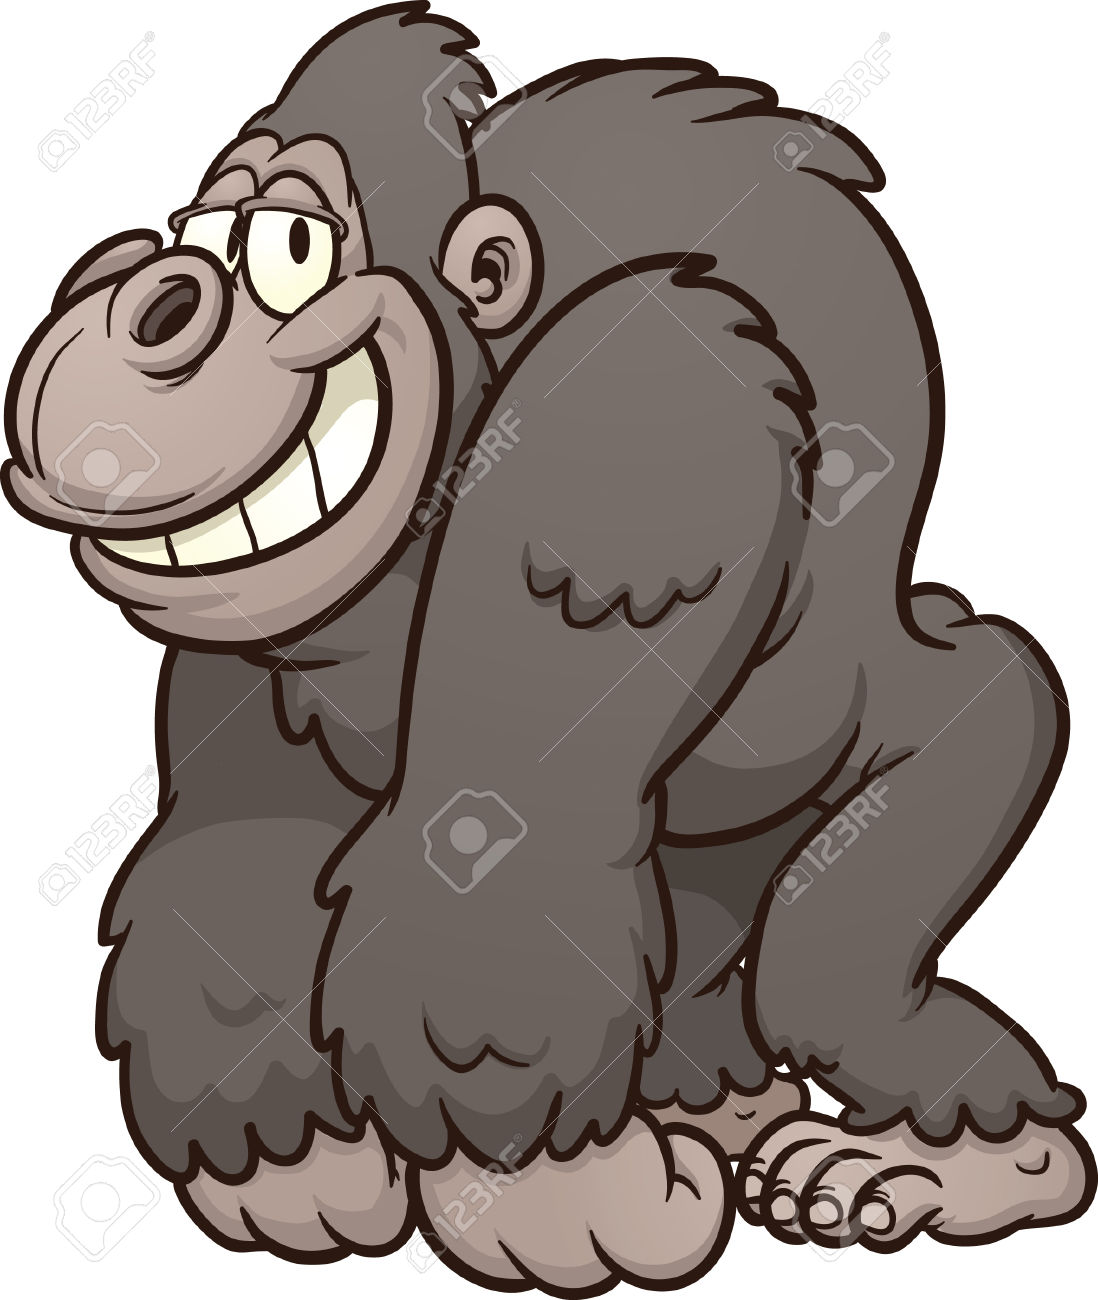 18,842 Gorilla Stock Vector Illustration And Royalty Free Gorilla.